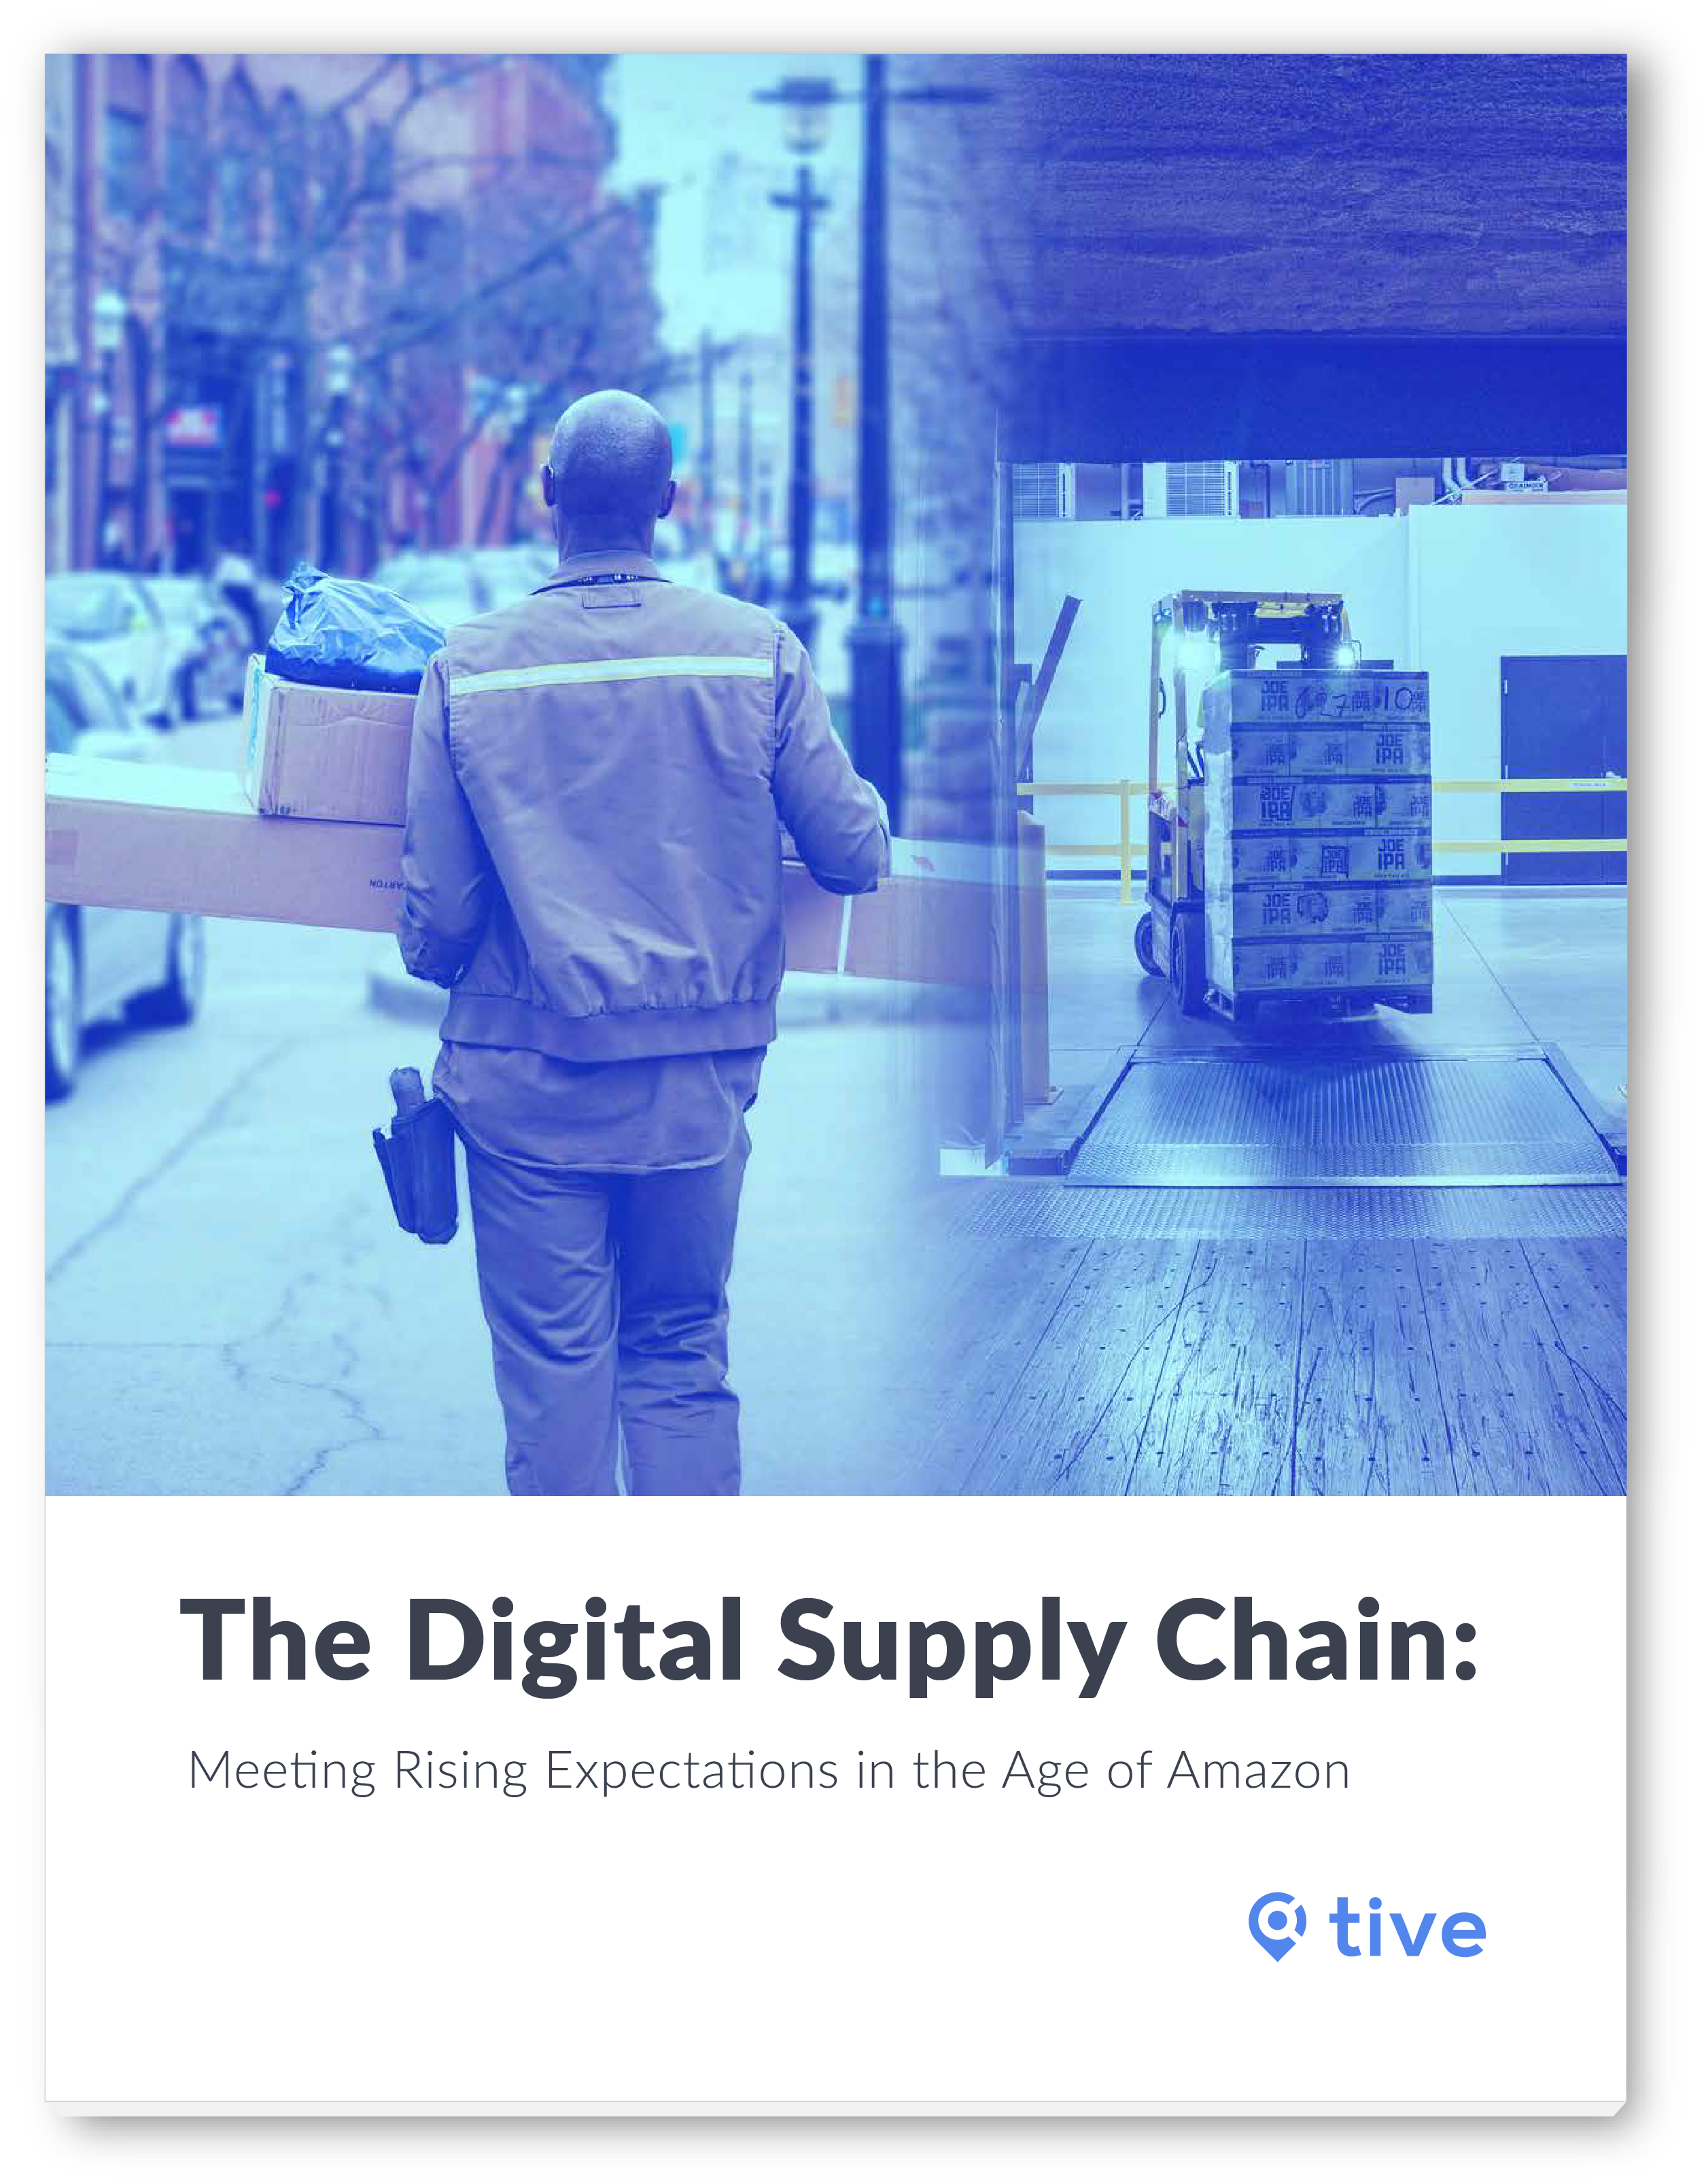 The Digital Supply Chain: Meeting Rising Expectations in the Age of Amazon